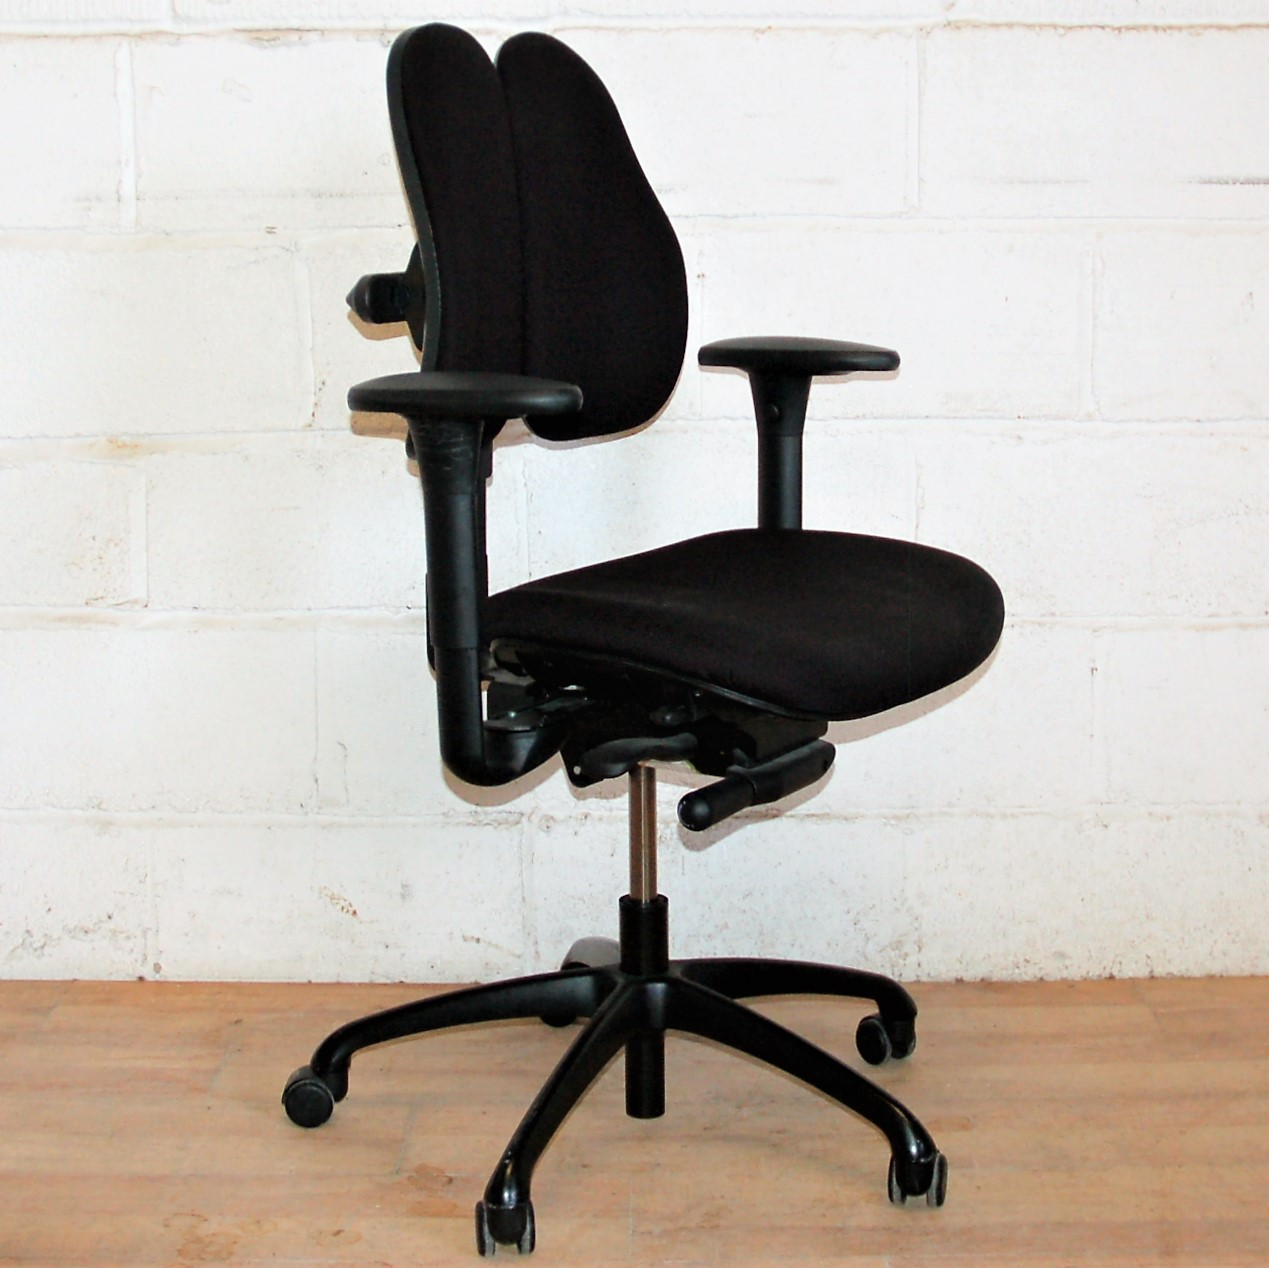 ROHDE GRAHL Duo Back 11 Ergonomic Task Chair 2141